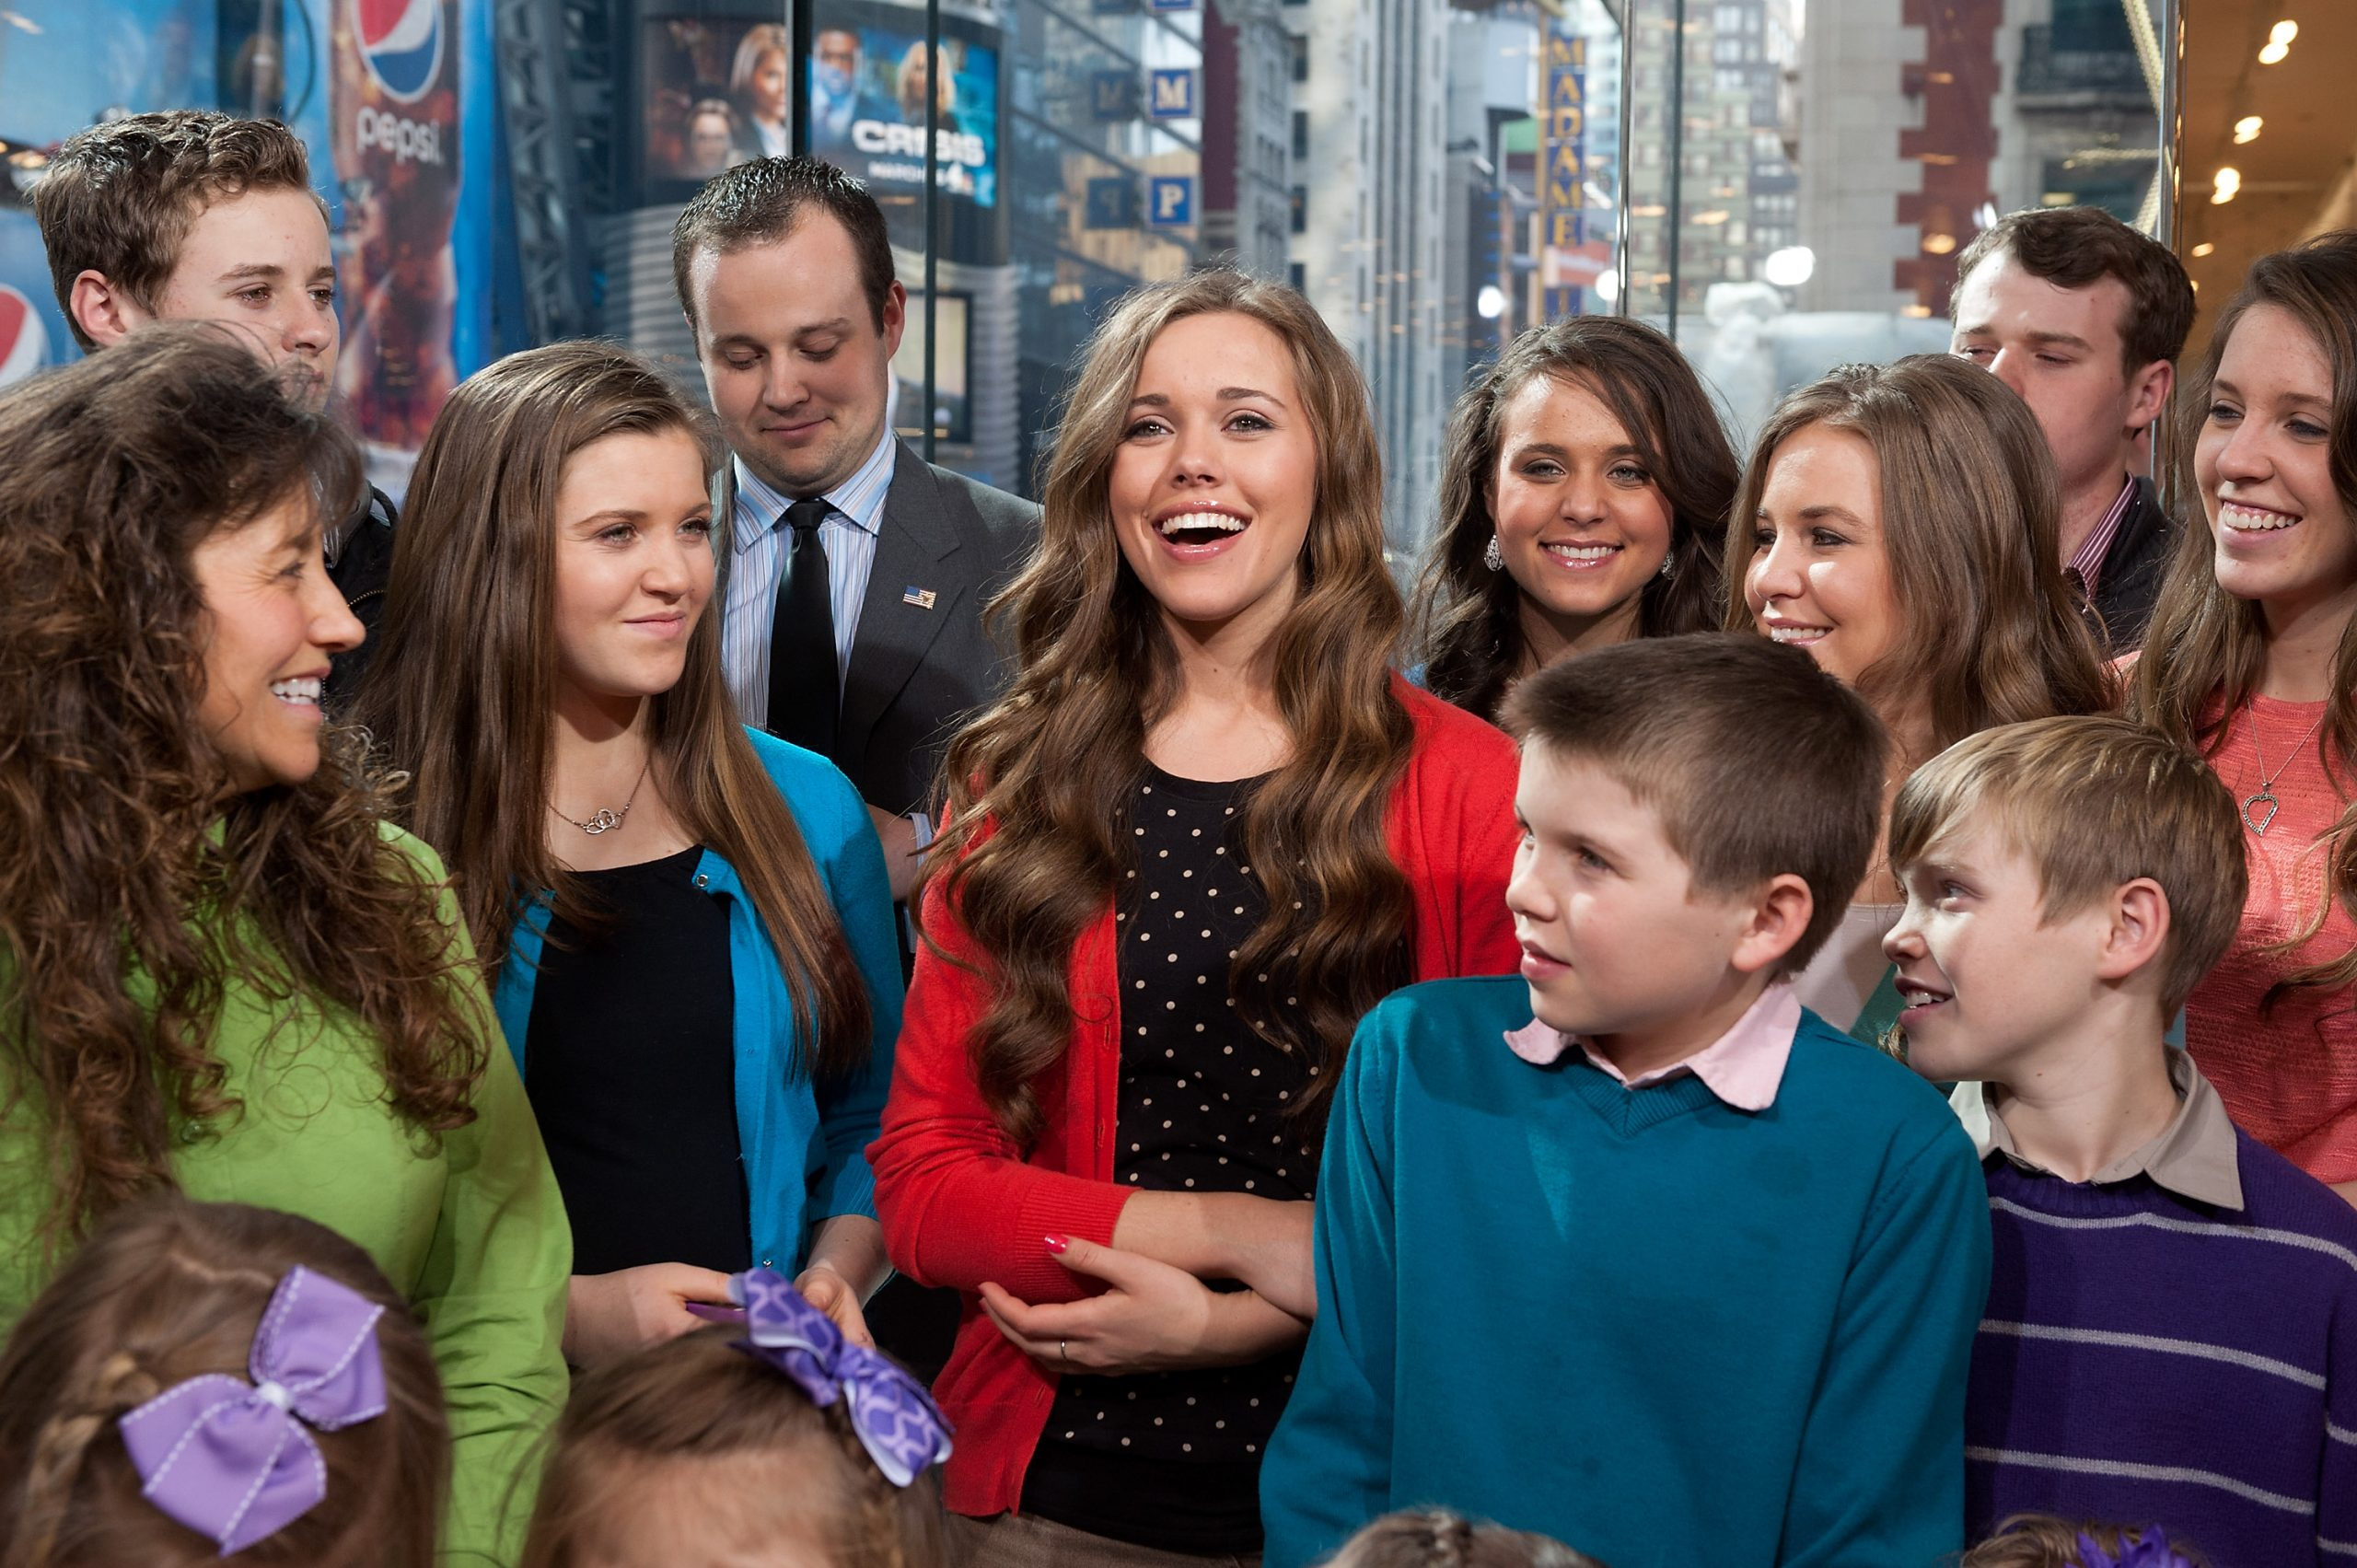 Jessa Duggar in a red cardigan surrounded by members of her family during an appearance on Extra.